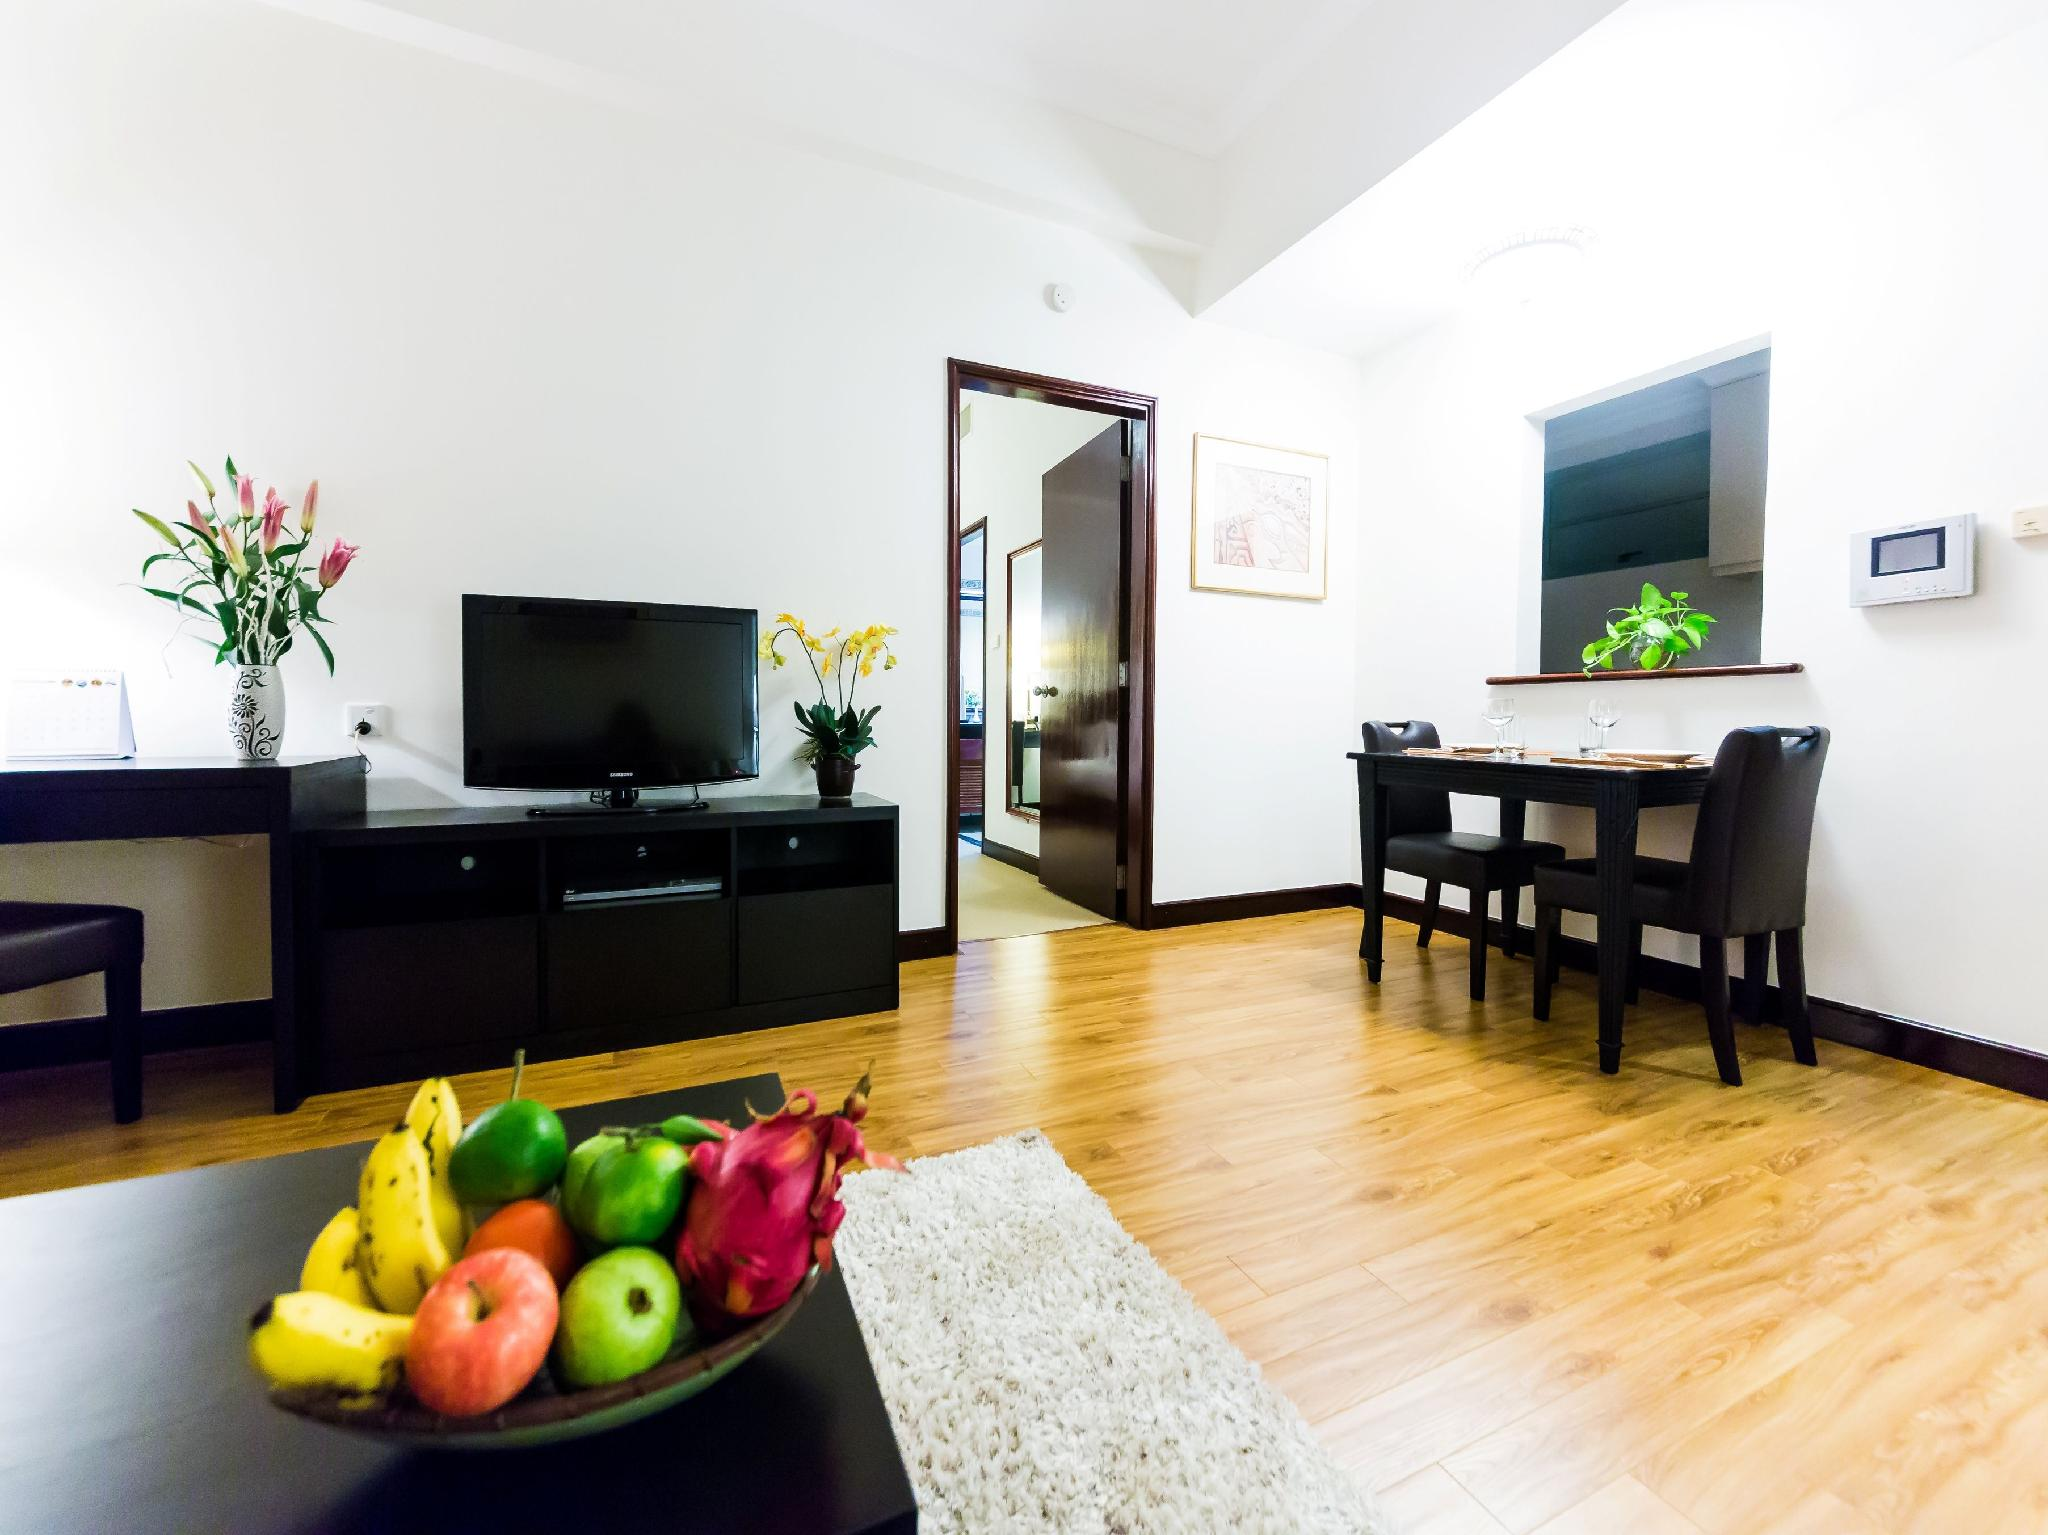 Apartmá 1 ložnice (1 Bedroom Suite Apartment)